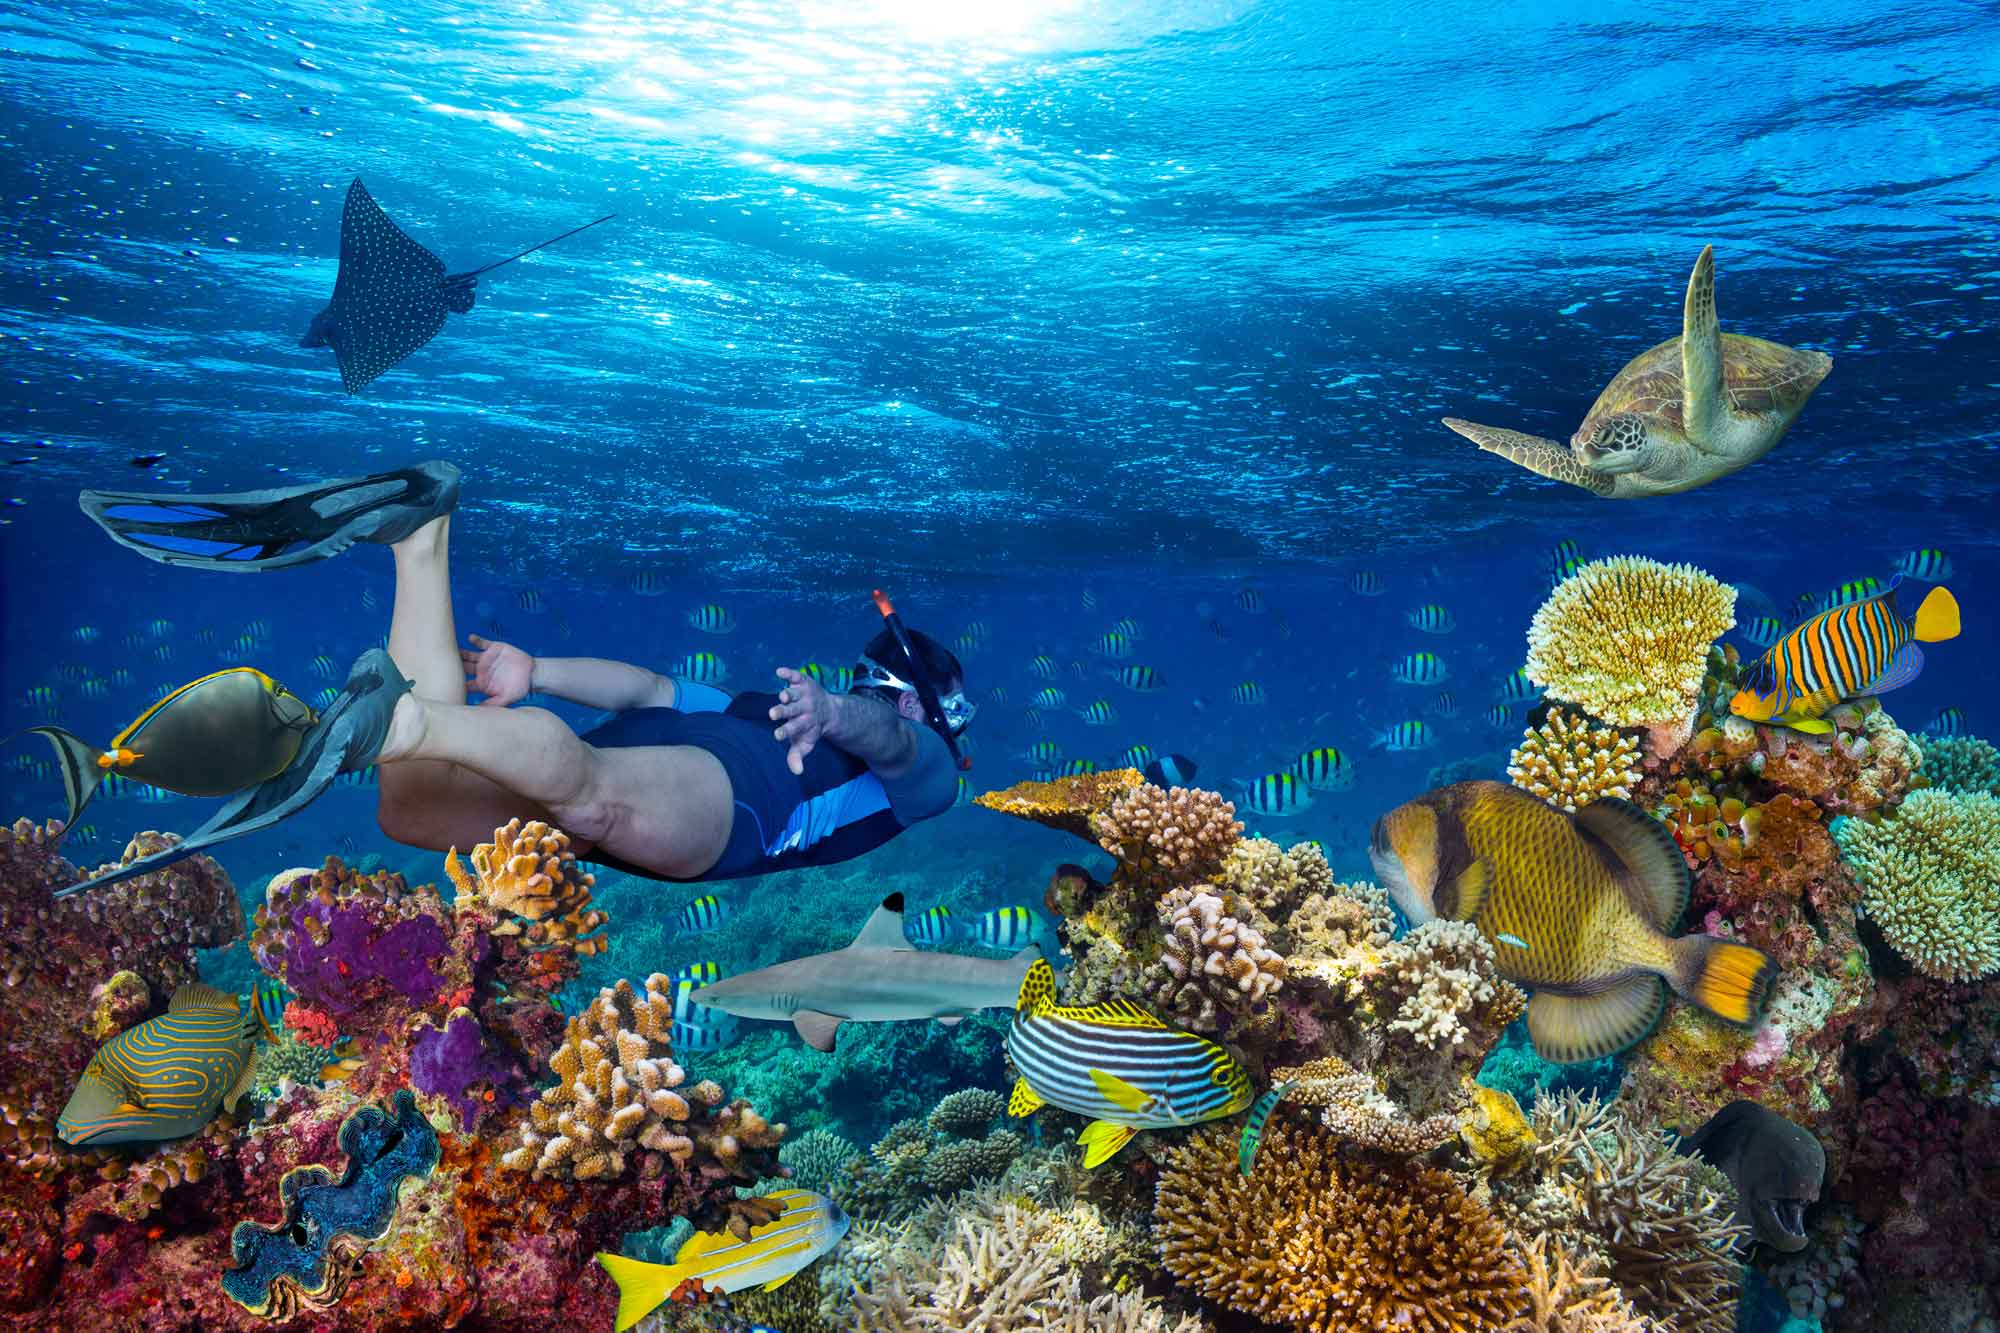 Underwater Great Barrier Reef with coral, fish, turtle and a man snorkeling